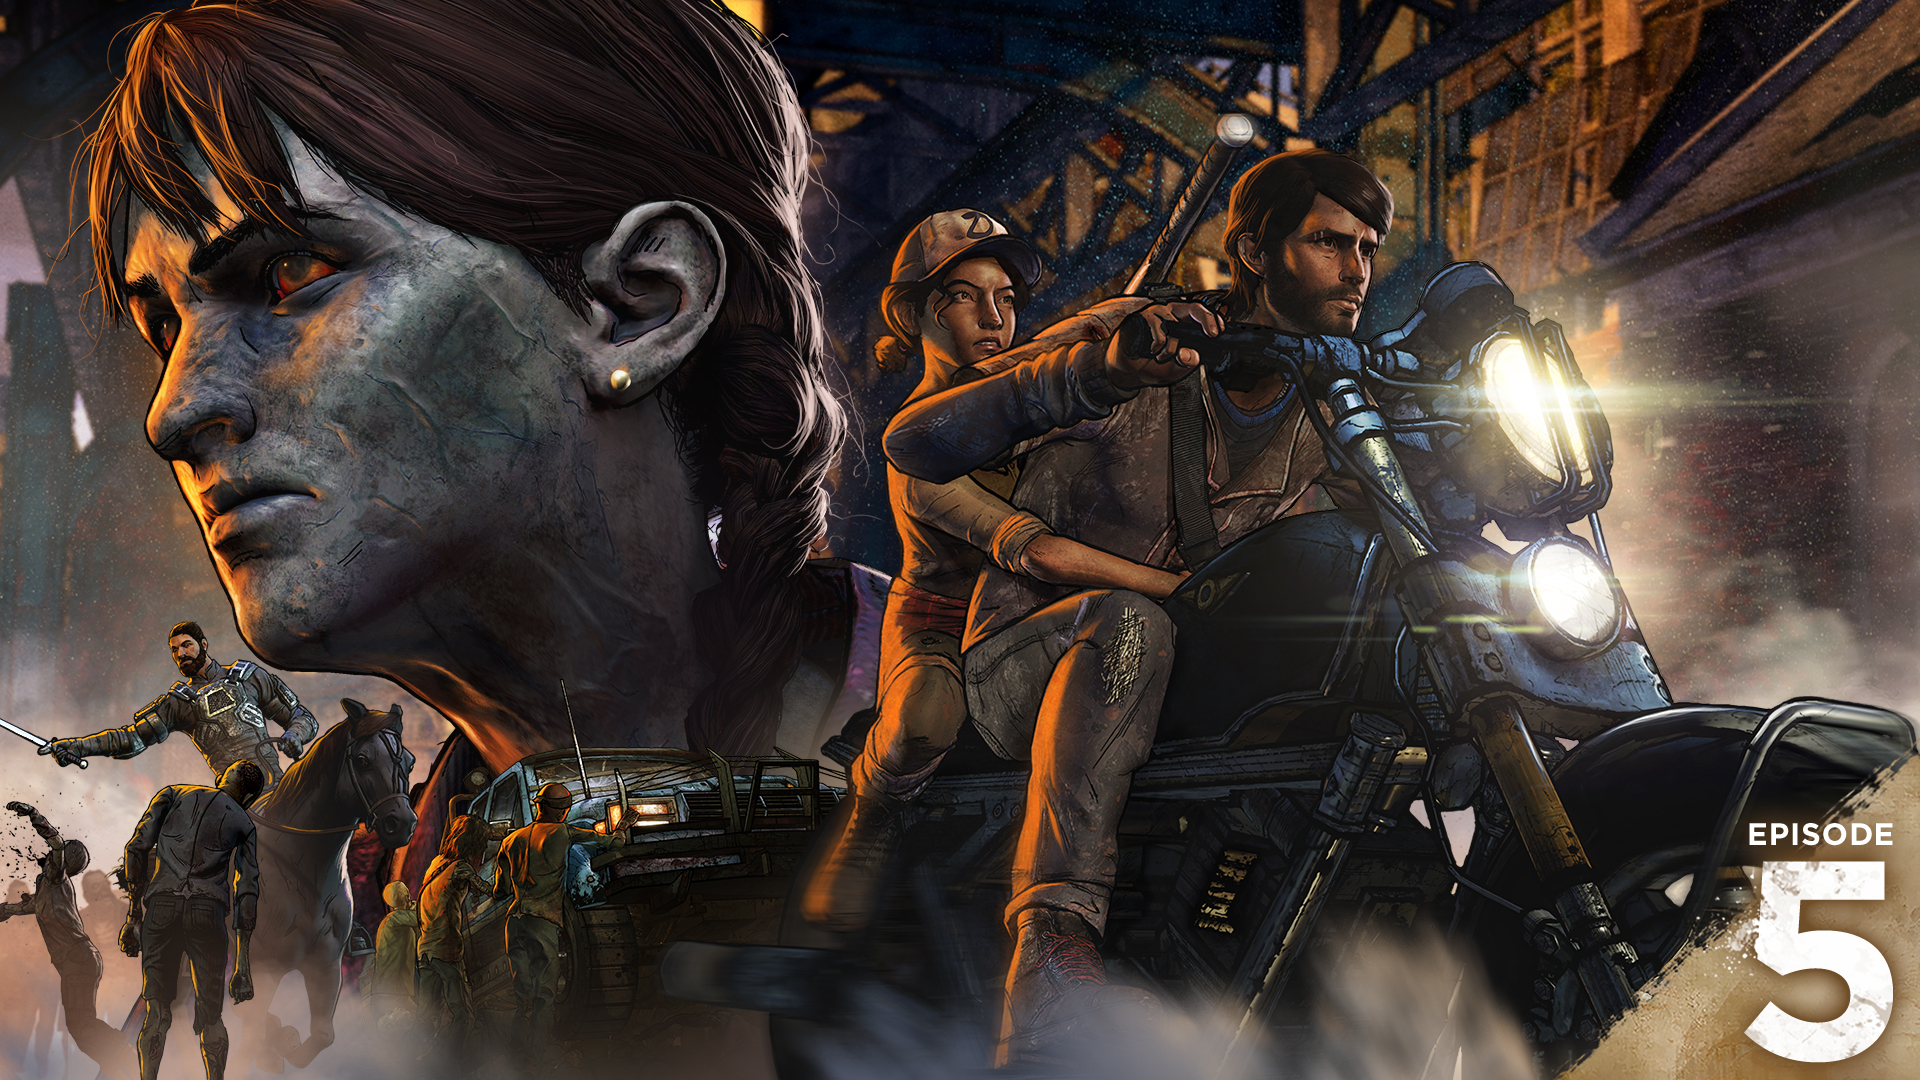 Review: The Walking Dead: A New Frontier: From the Gallows